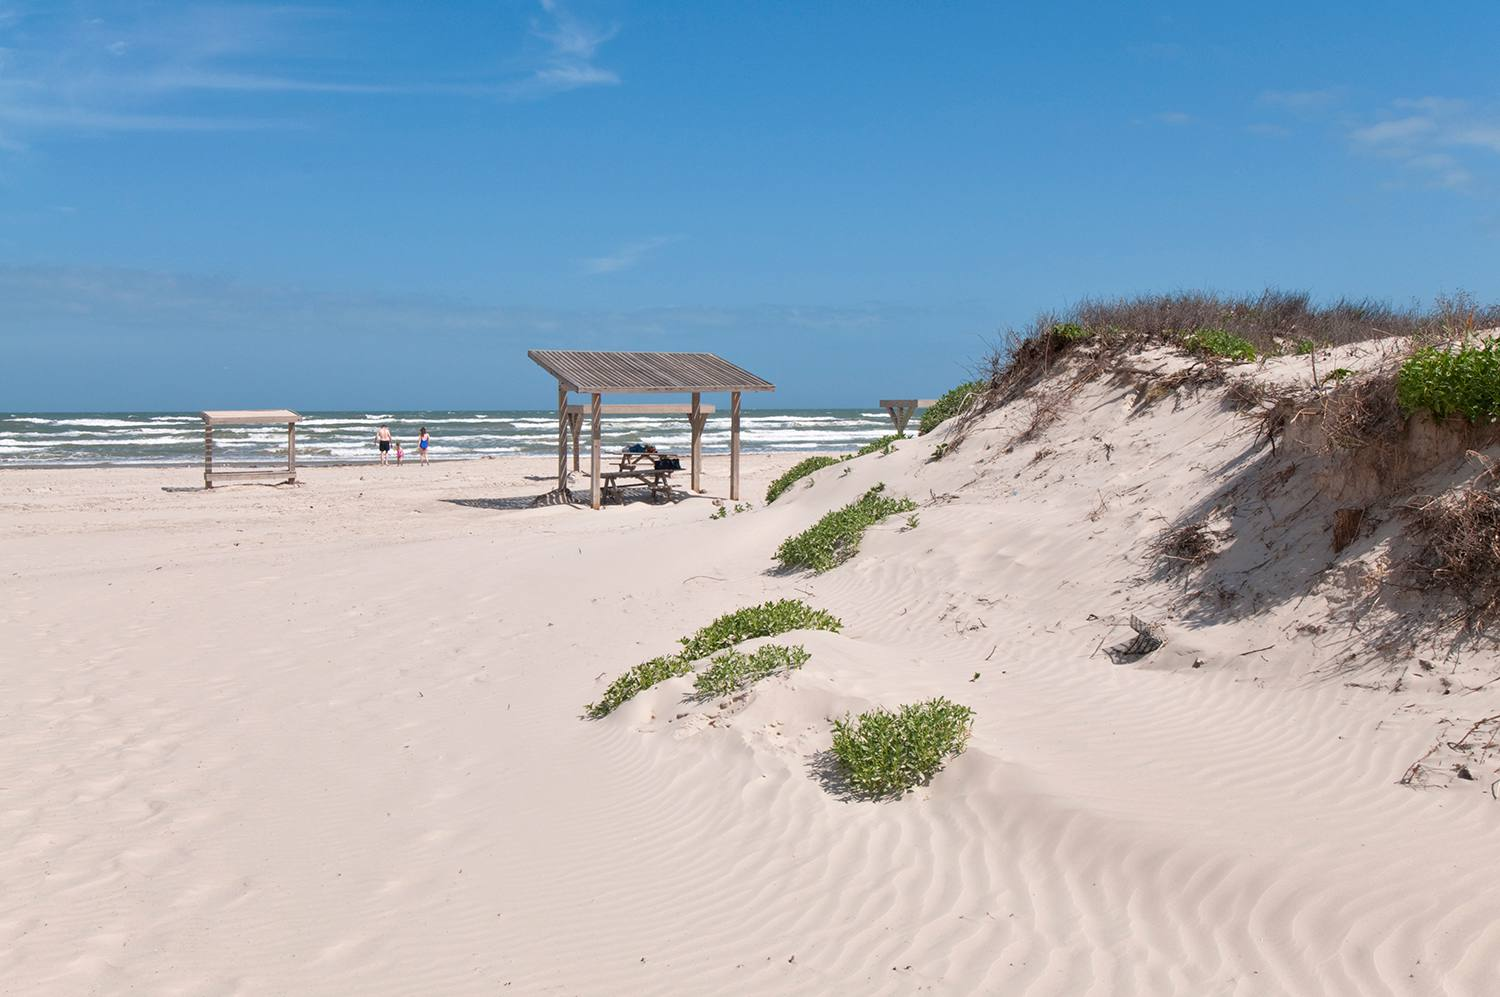 Family consisting of mother, father and female child at Malaquite Beach, Padre Island National Seashore.